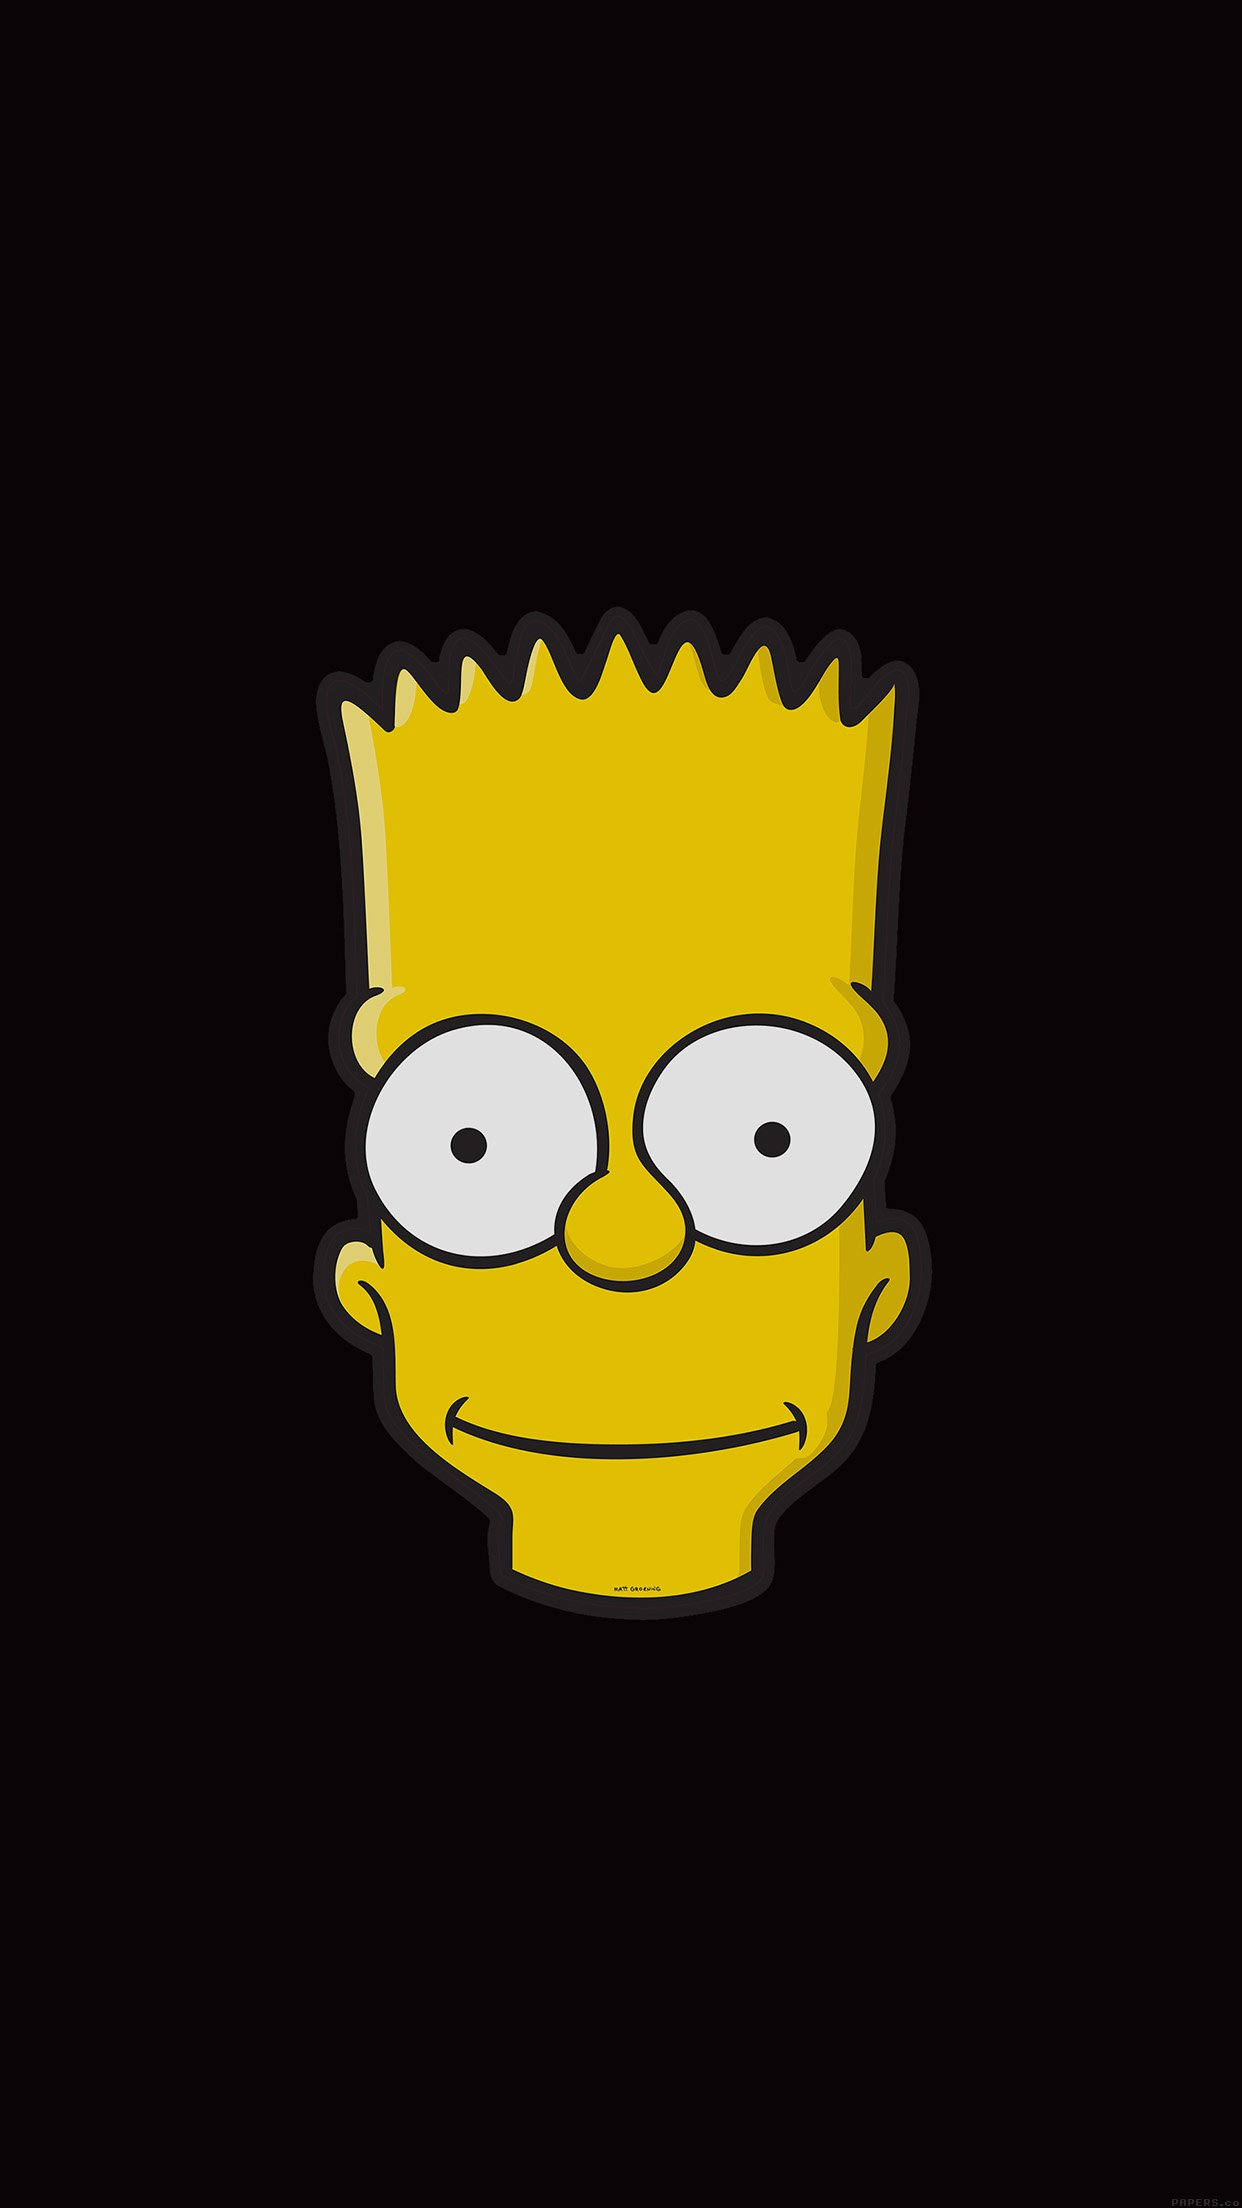 All White Iphone Wallpaper Simpsons Bart Wallpaper For Iphone X 8 7 6 Free